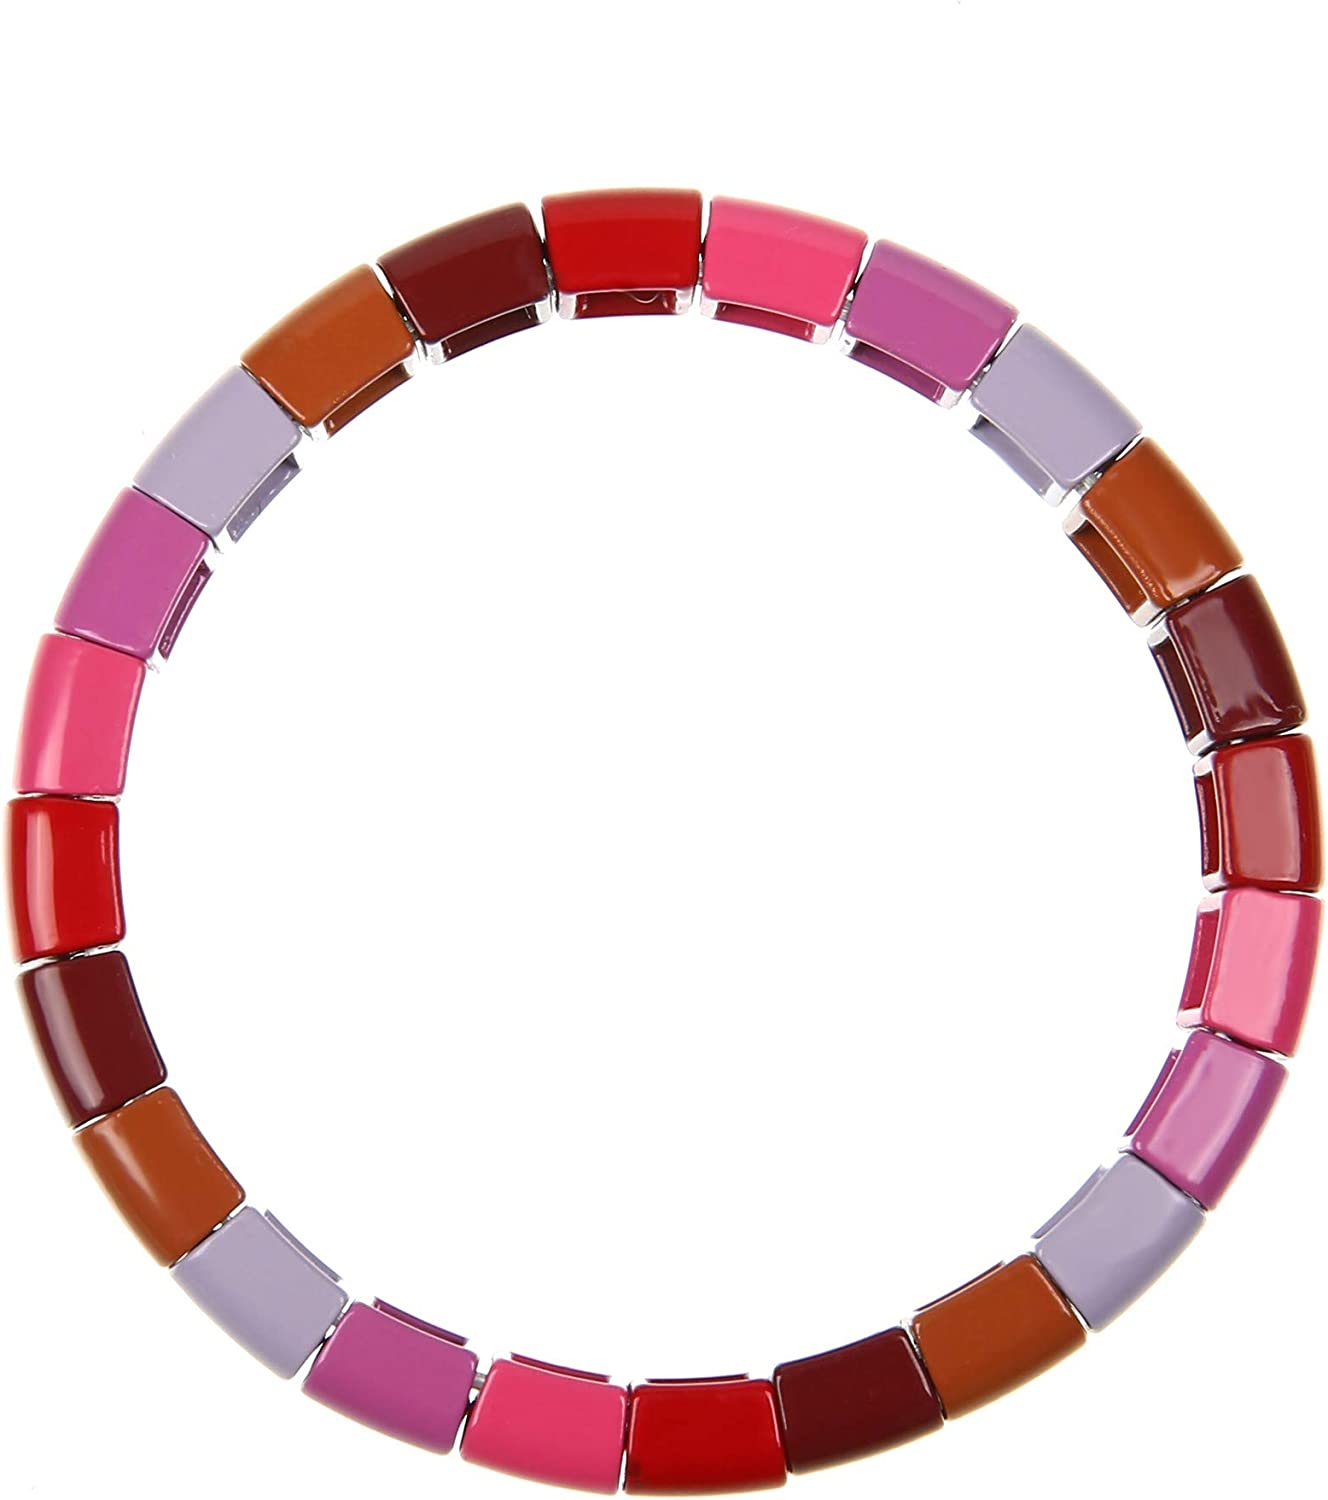 Coolcos Enamel Tile Bracelet Rainbow Colorful Tila Beads Bracelets for Women /& Men Color Block Elastic Bangle Bracelets